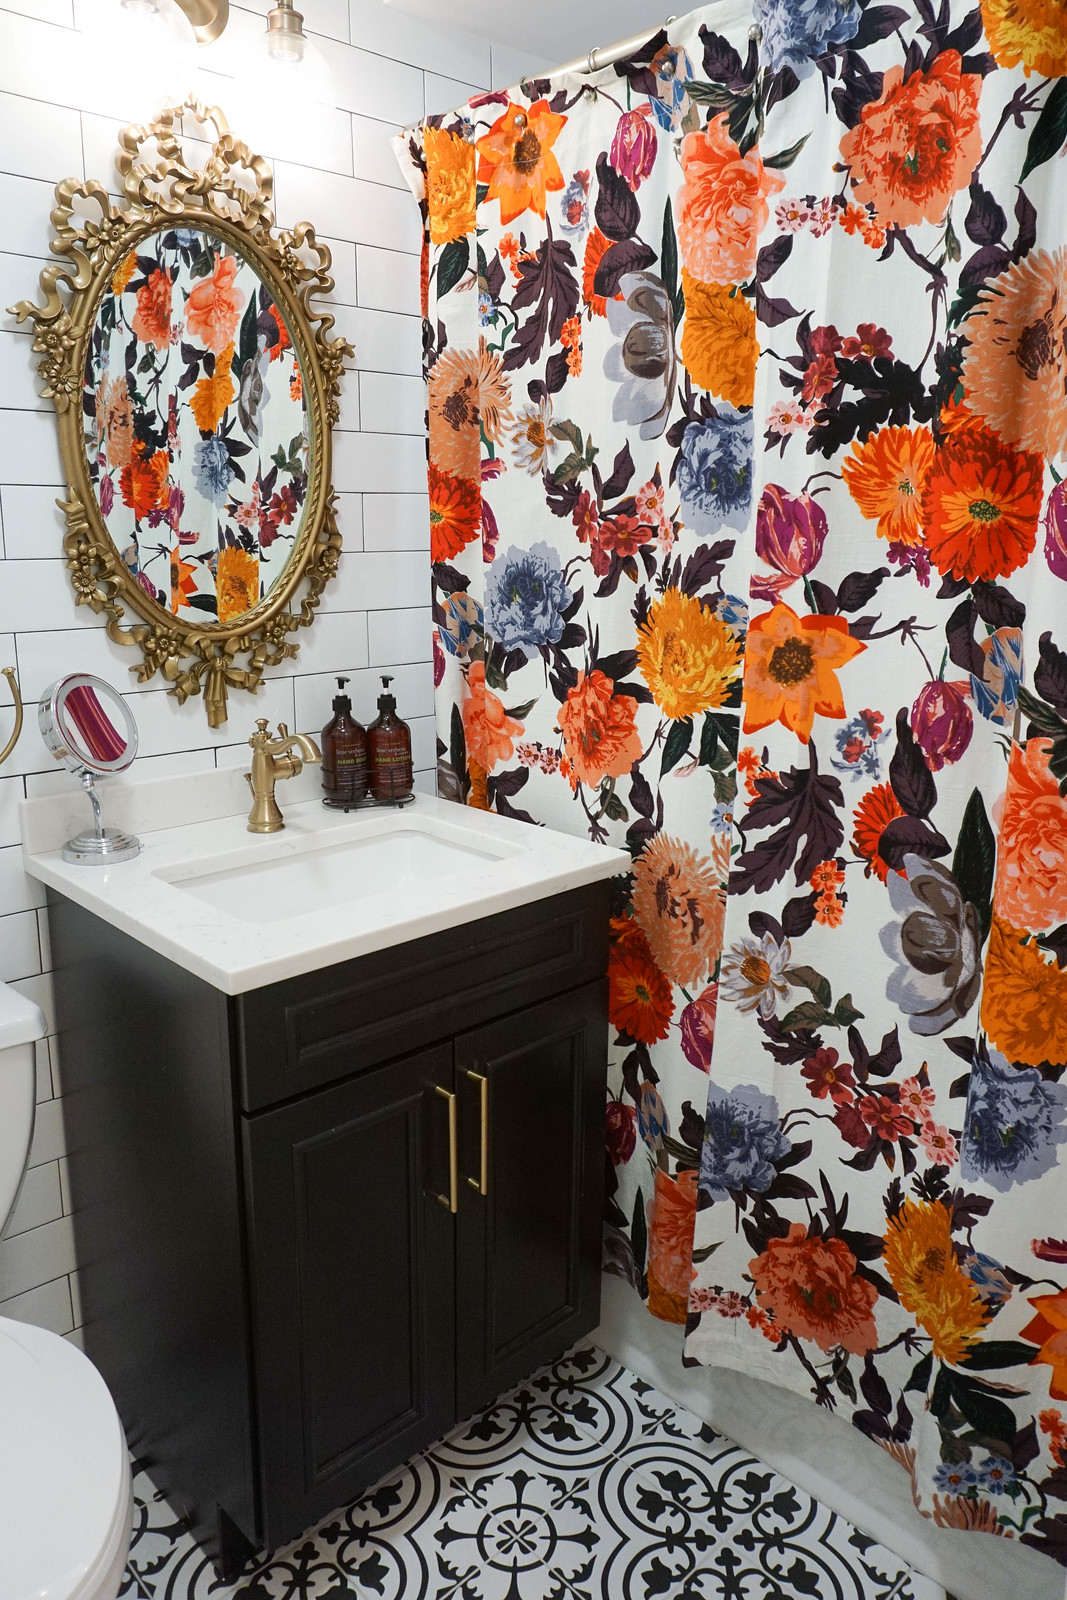 Anthropologie Agneta Floral Shower Curtain Vintage Gold Bathroom Mirror Black White Moroccan Floor Tile Black Vanity